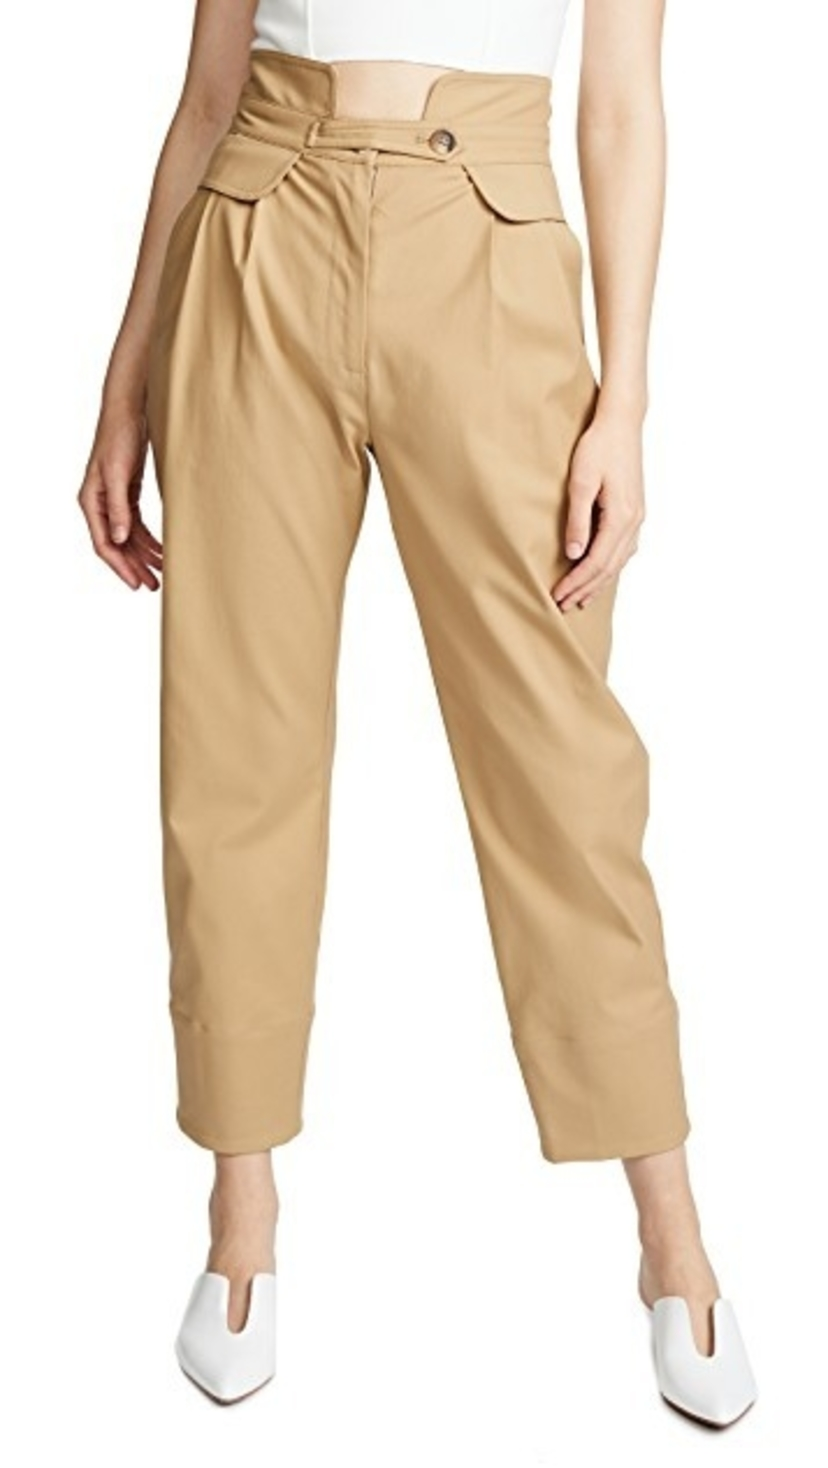 Sea Sea Cruise Work Pants Pants